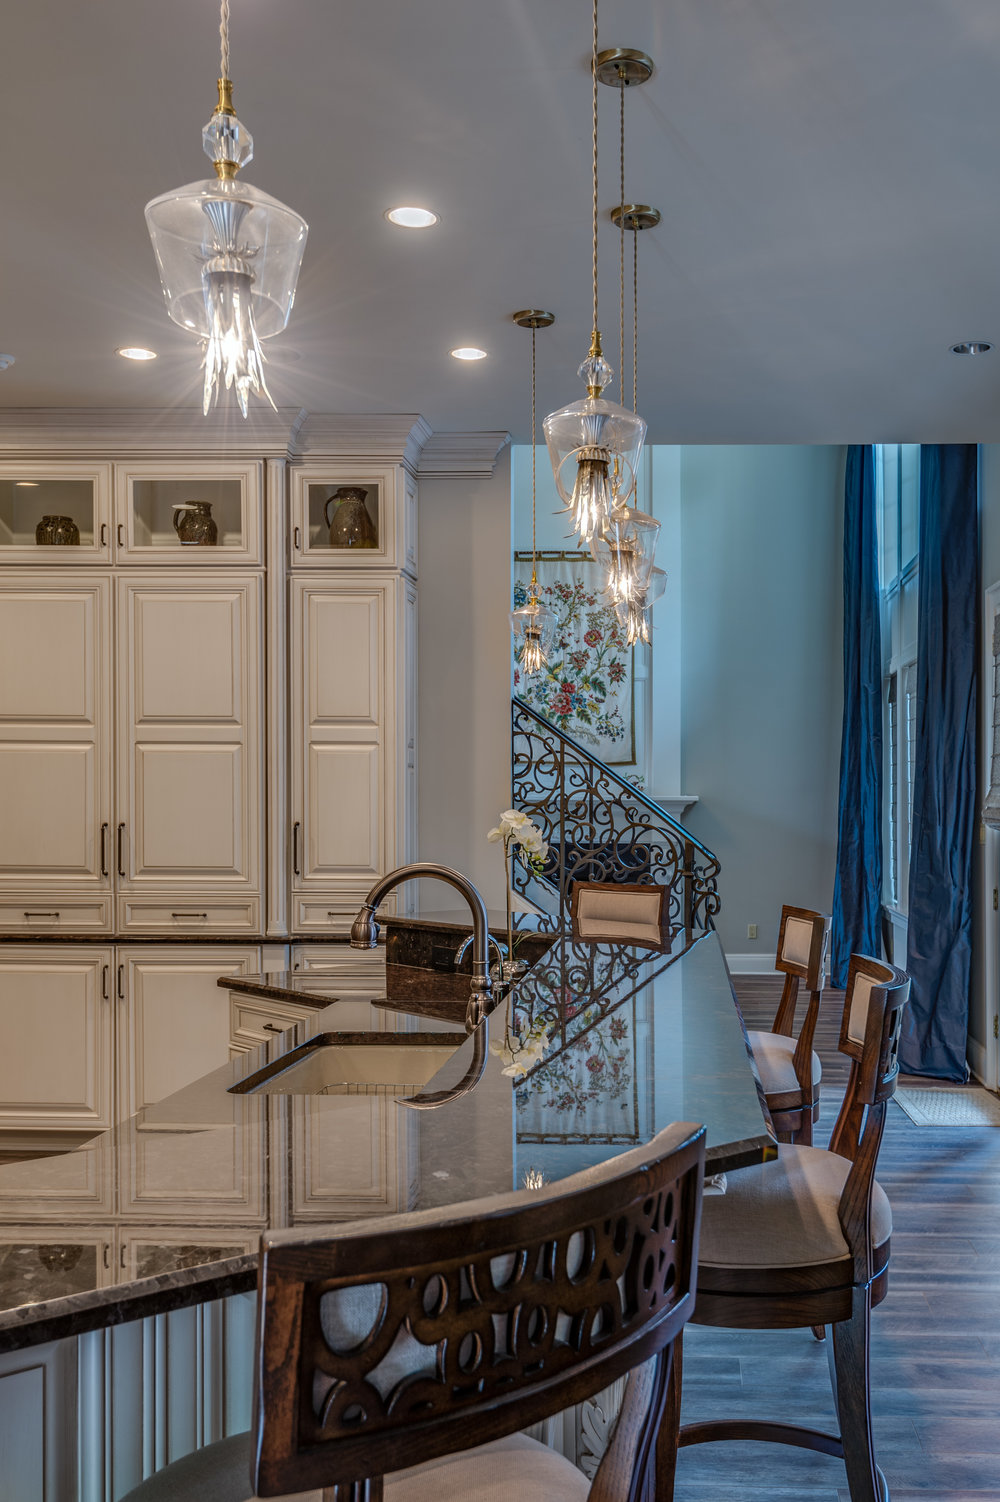 KHB Interiors beautiful kitchen into sitting old metairie new orleans uptown interior designer new furniture custom drapery metairie .jpg